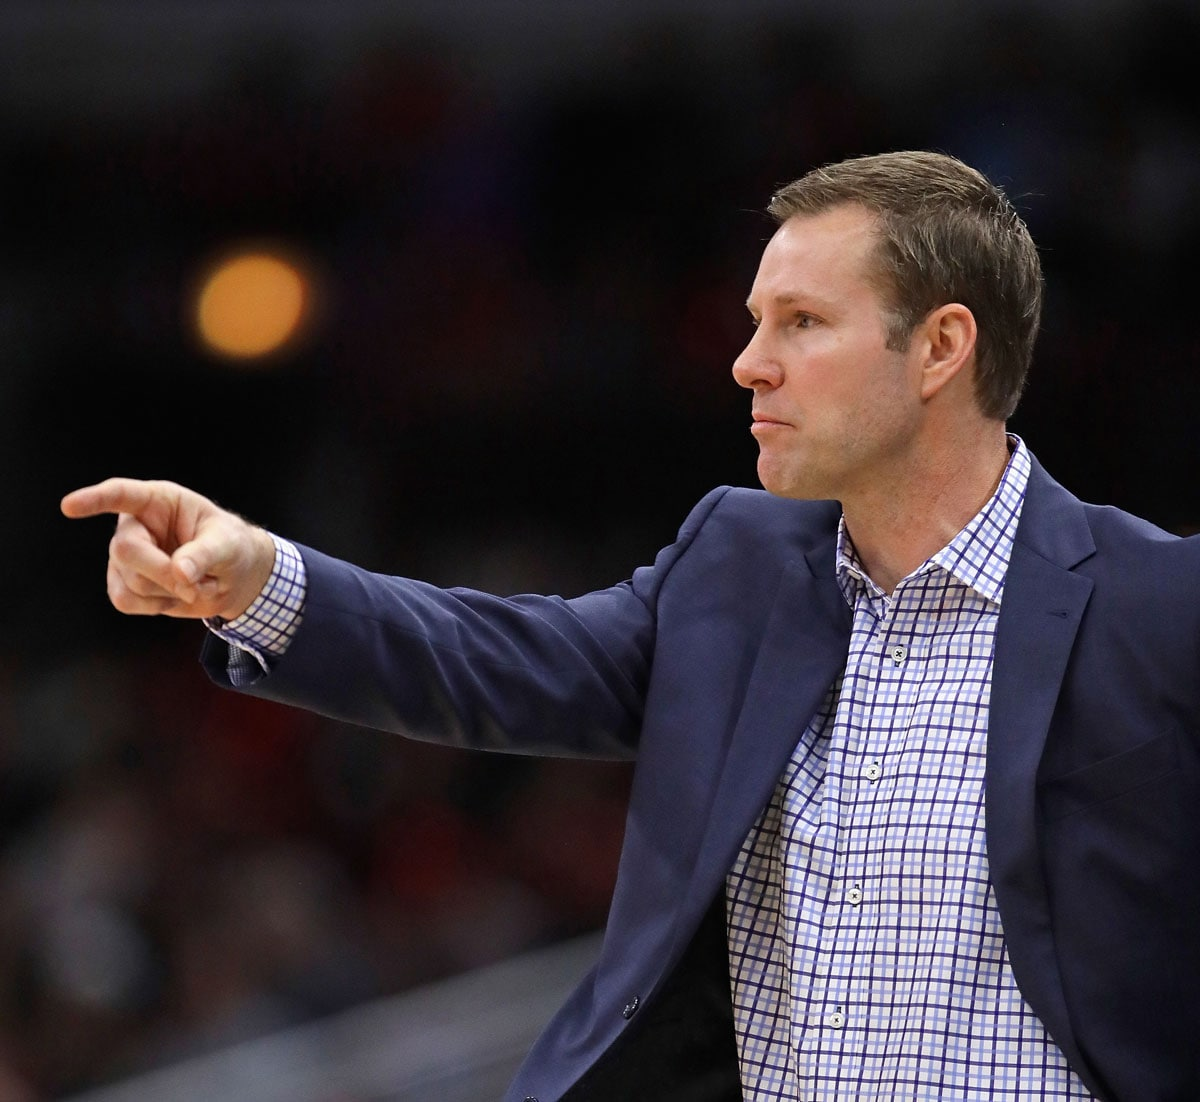 Head coach Fred Hoiberg of the Chicago Bulls calls a play against the Minnesota Timberwolves at the United Center on February 9, 2018